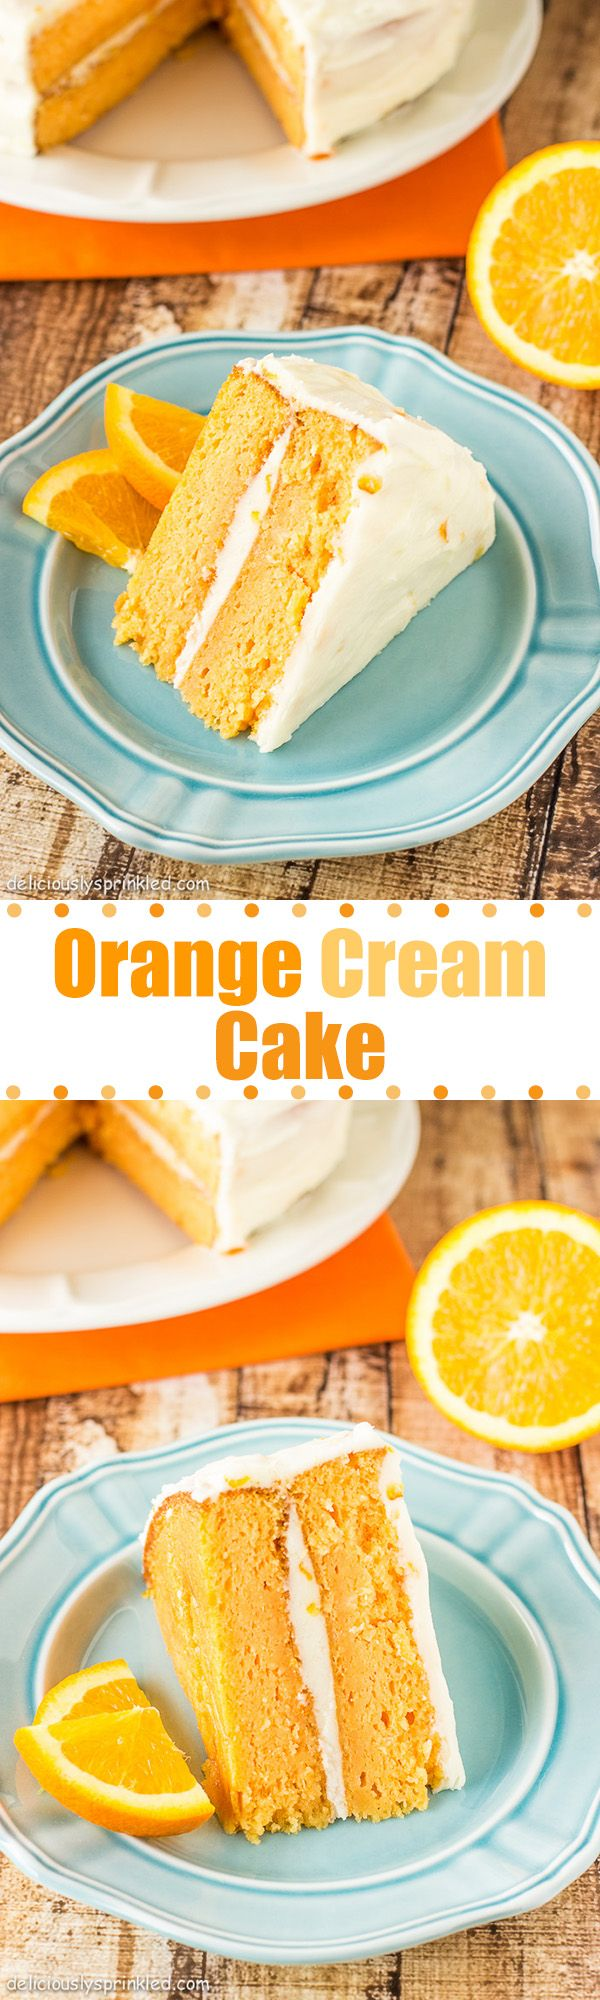 Orange Cream Cake (From Cake Mix) Recipe - (deliouslysprinkled)